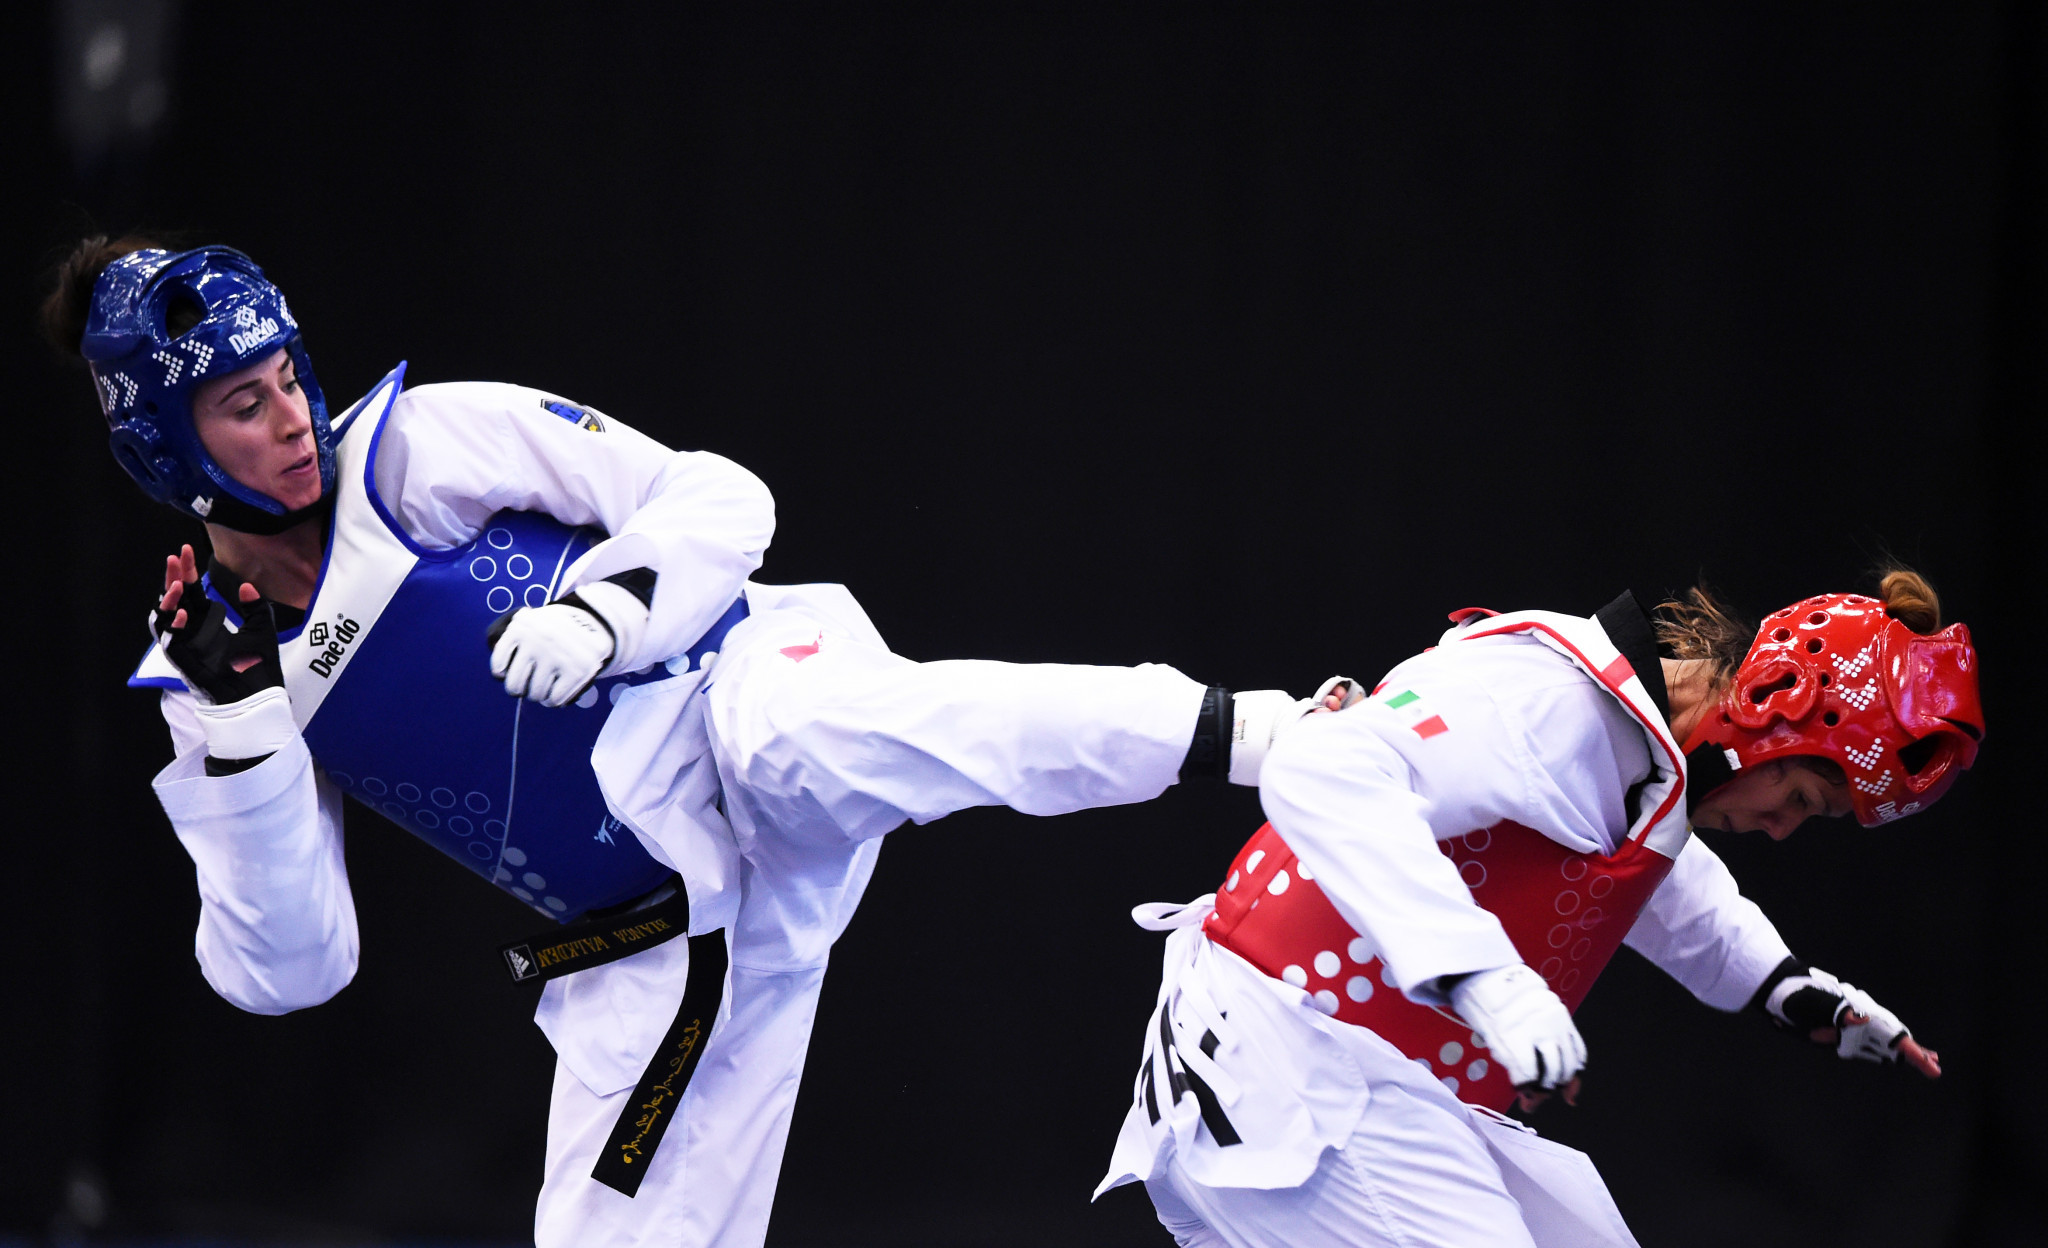 Walkden triumphs at World Taekwondo President's Cup for Europe region on successful day for hosts Turkey